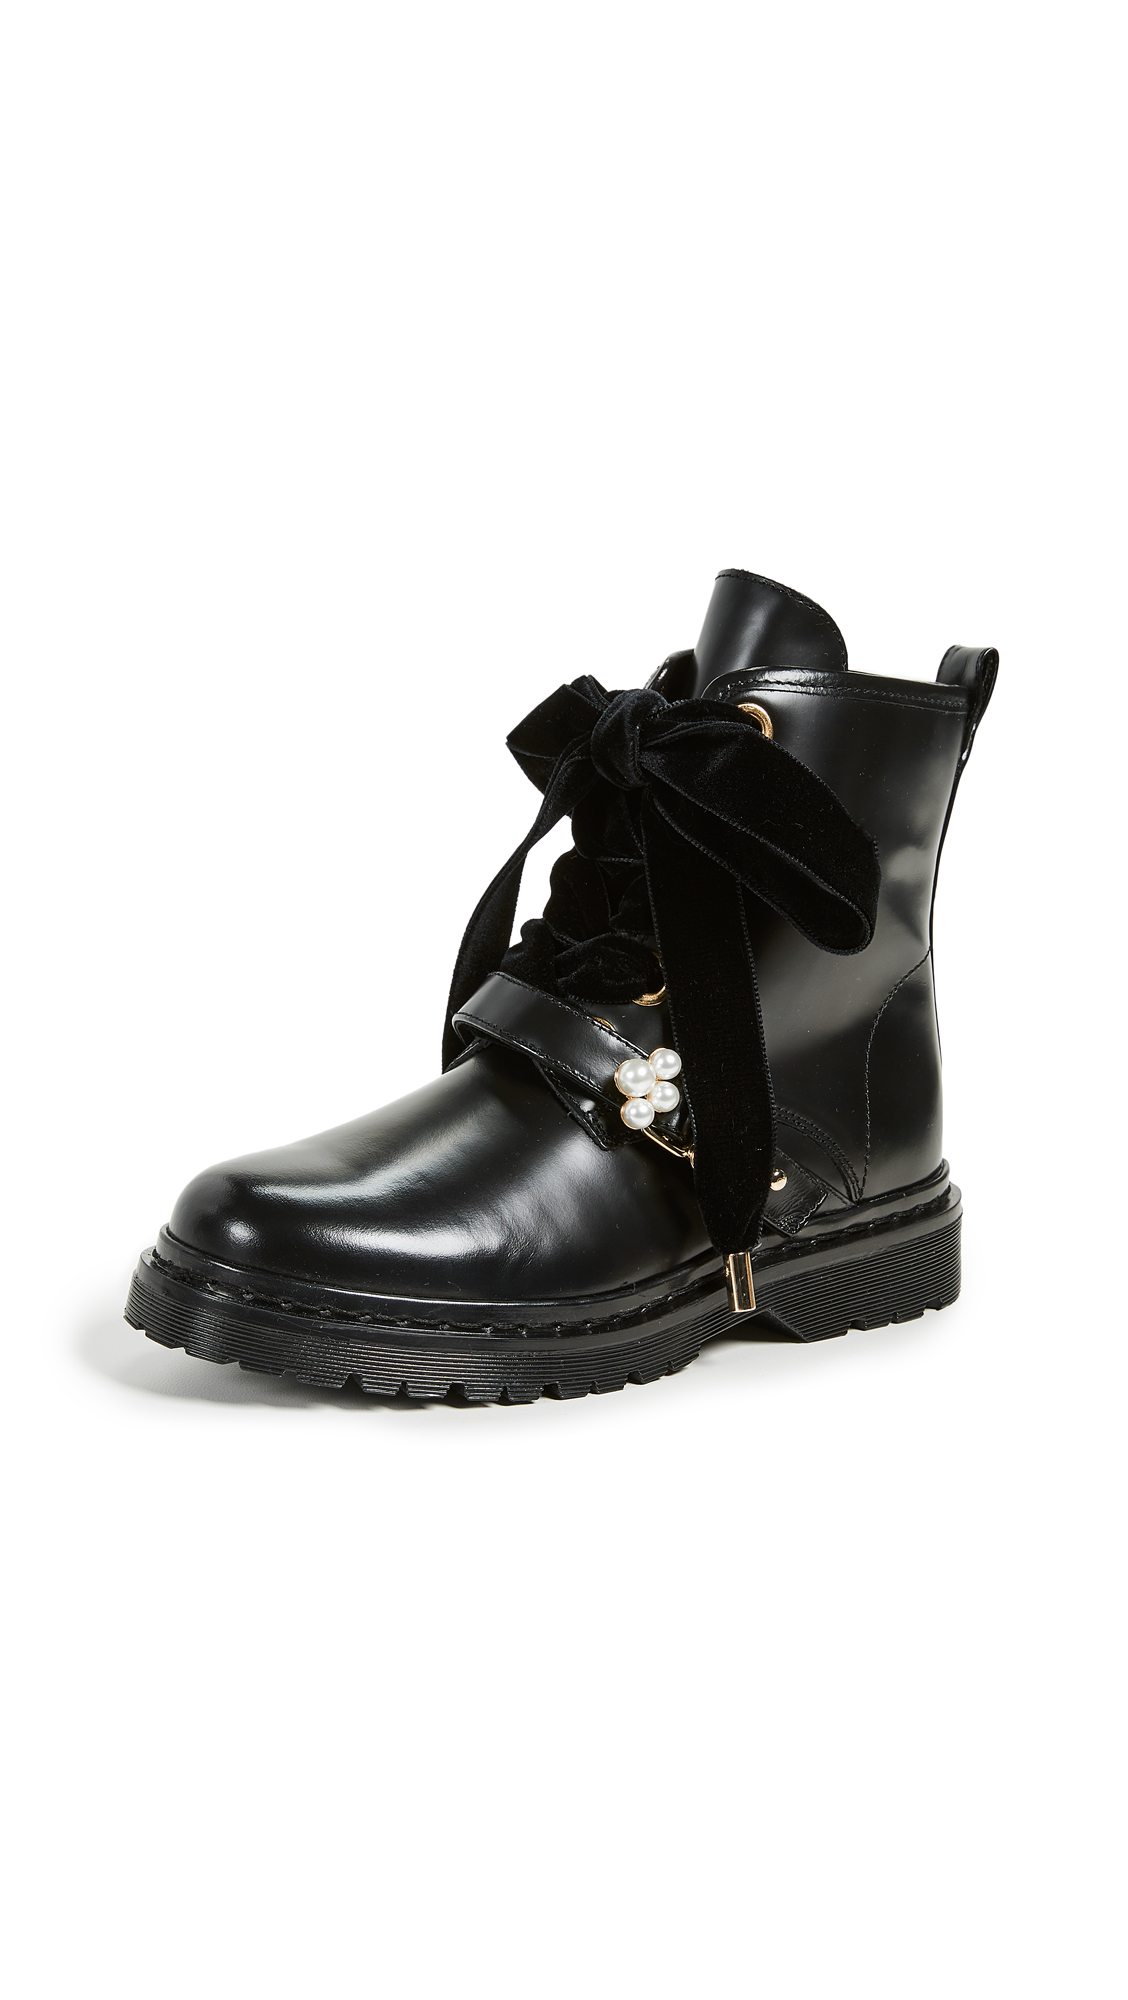 Mother of Pearl Enzo Combat Boots - Black